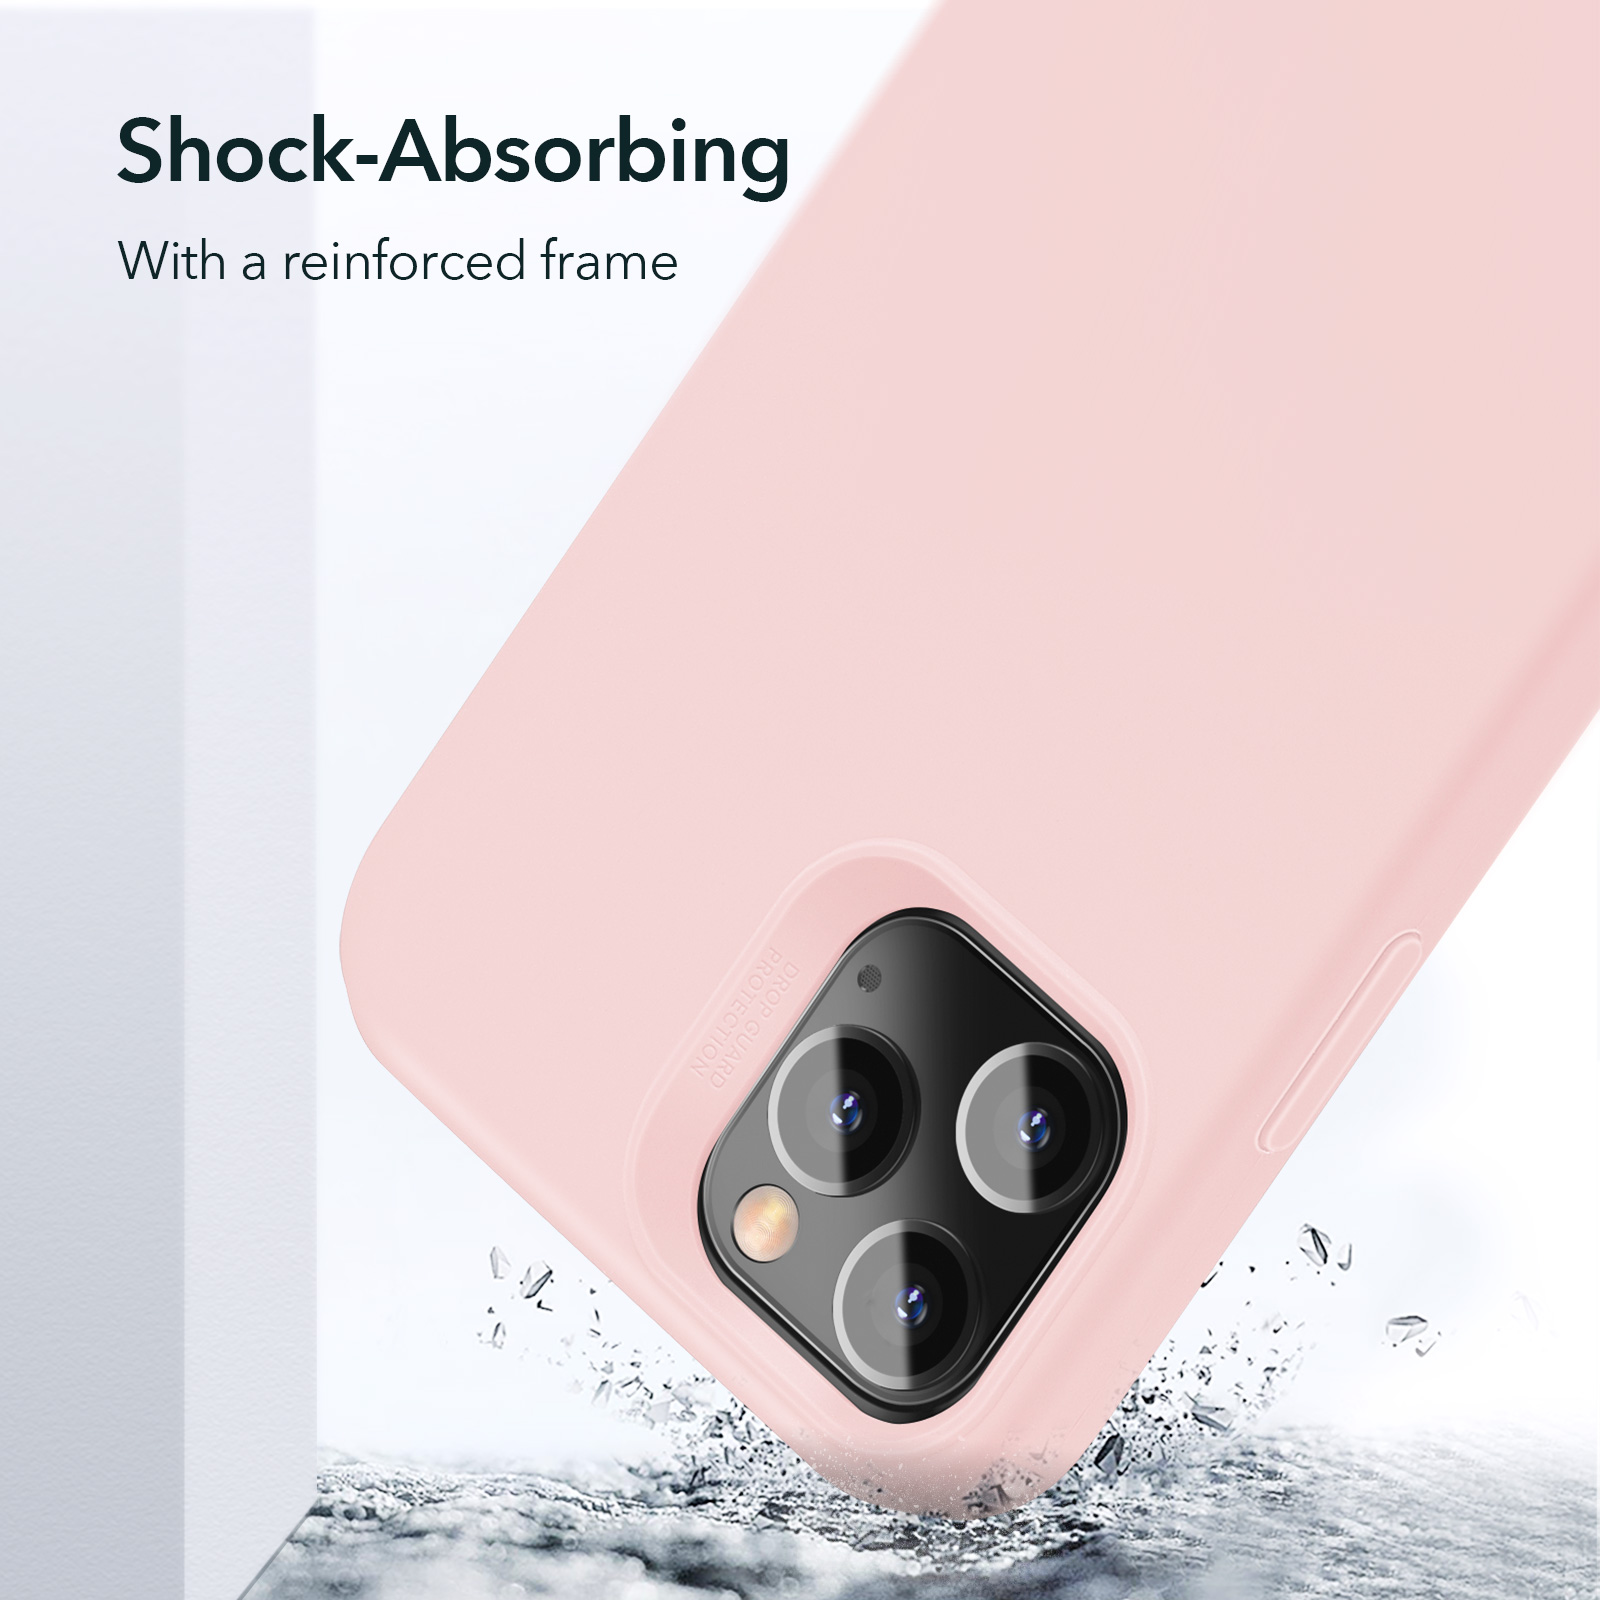 ESR Soft Silicone Case with a reinforced frame Sand Pink for iPhone 12 Pro Max